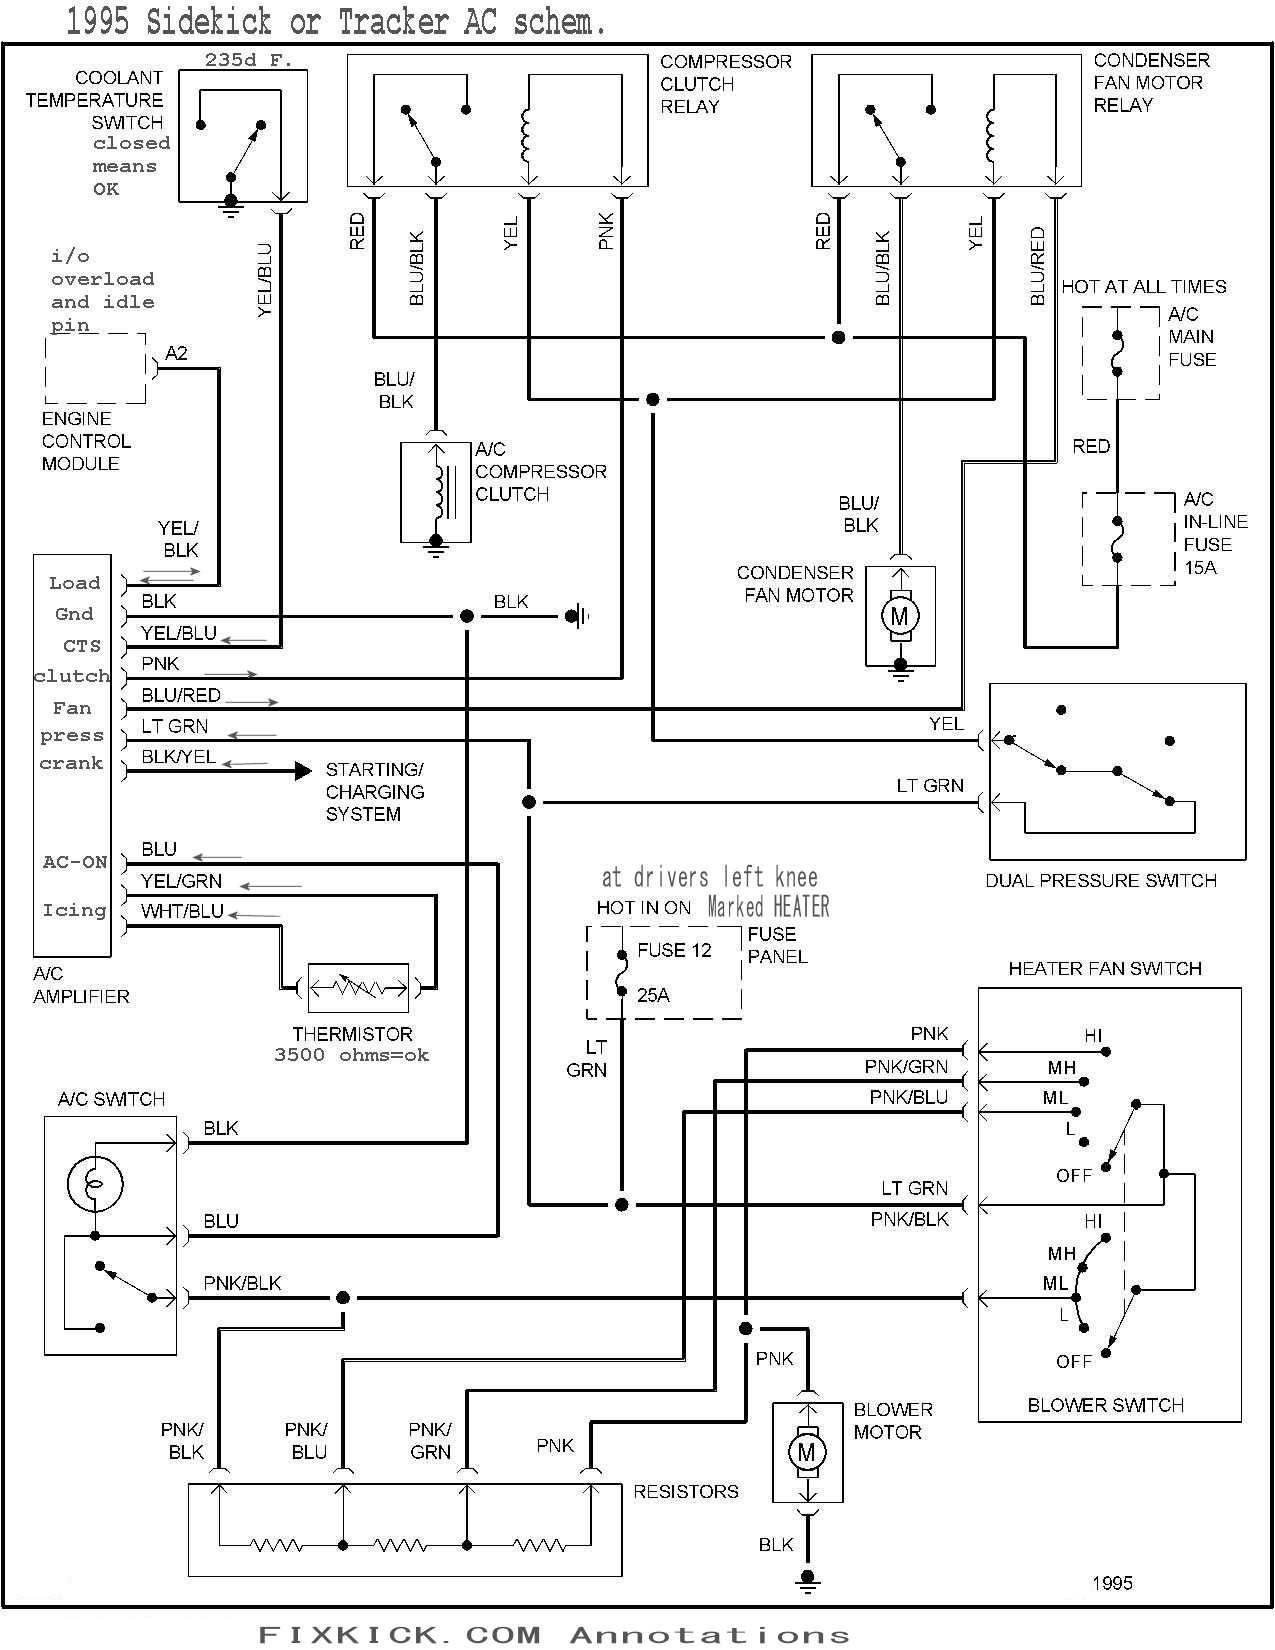 95 AC elect draw air conditioner repair suzuki f6a wiring diagram at gsmx.co